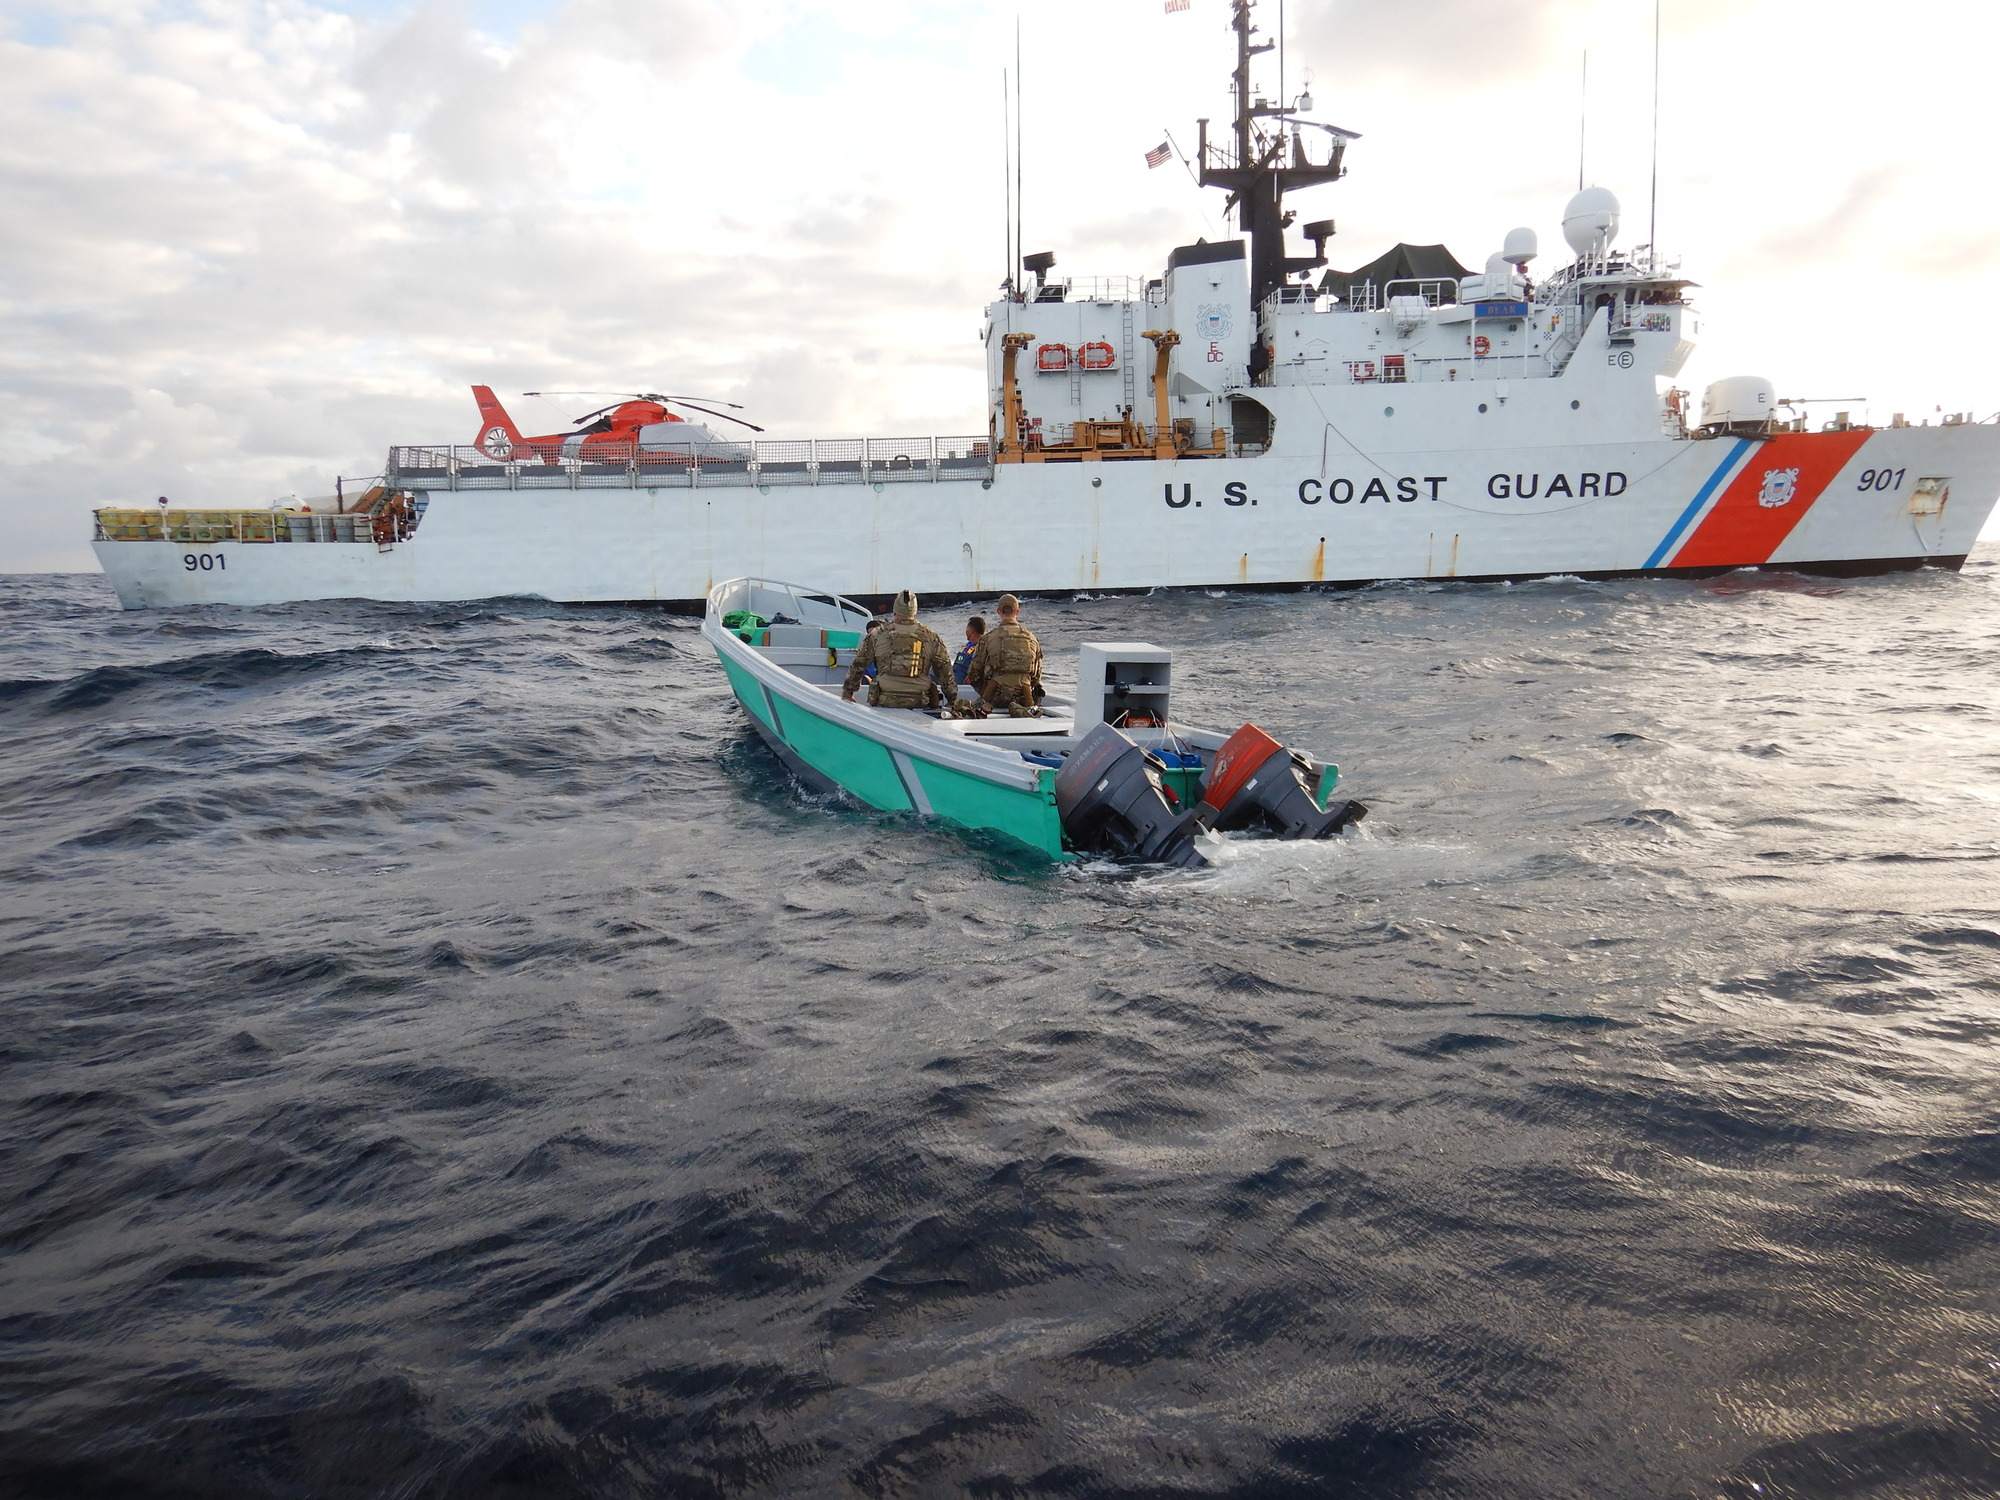 Coast Guard to offload 14,000 pounds of marijuana and 3,660 pounds of cocaine at Port Everglades